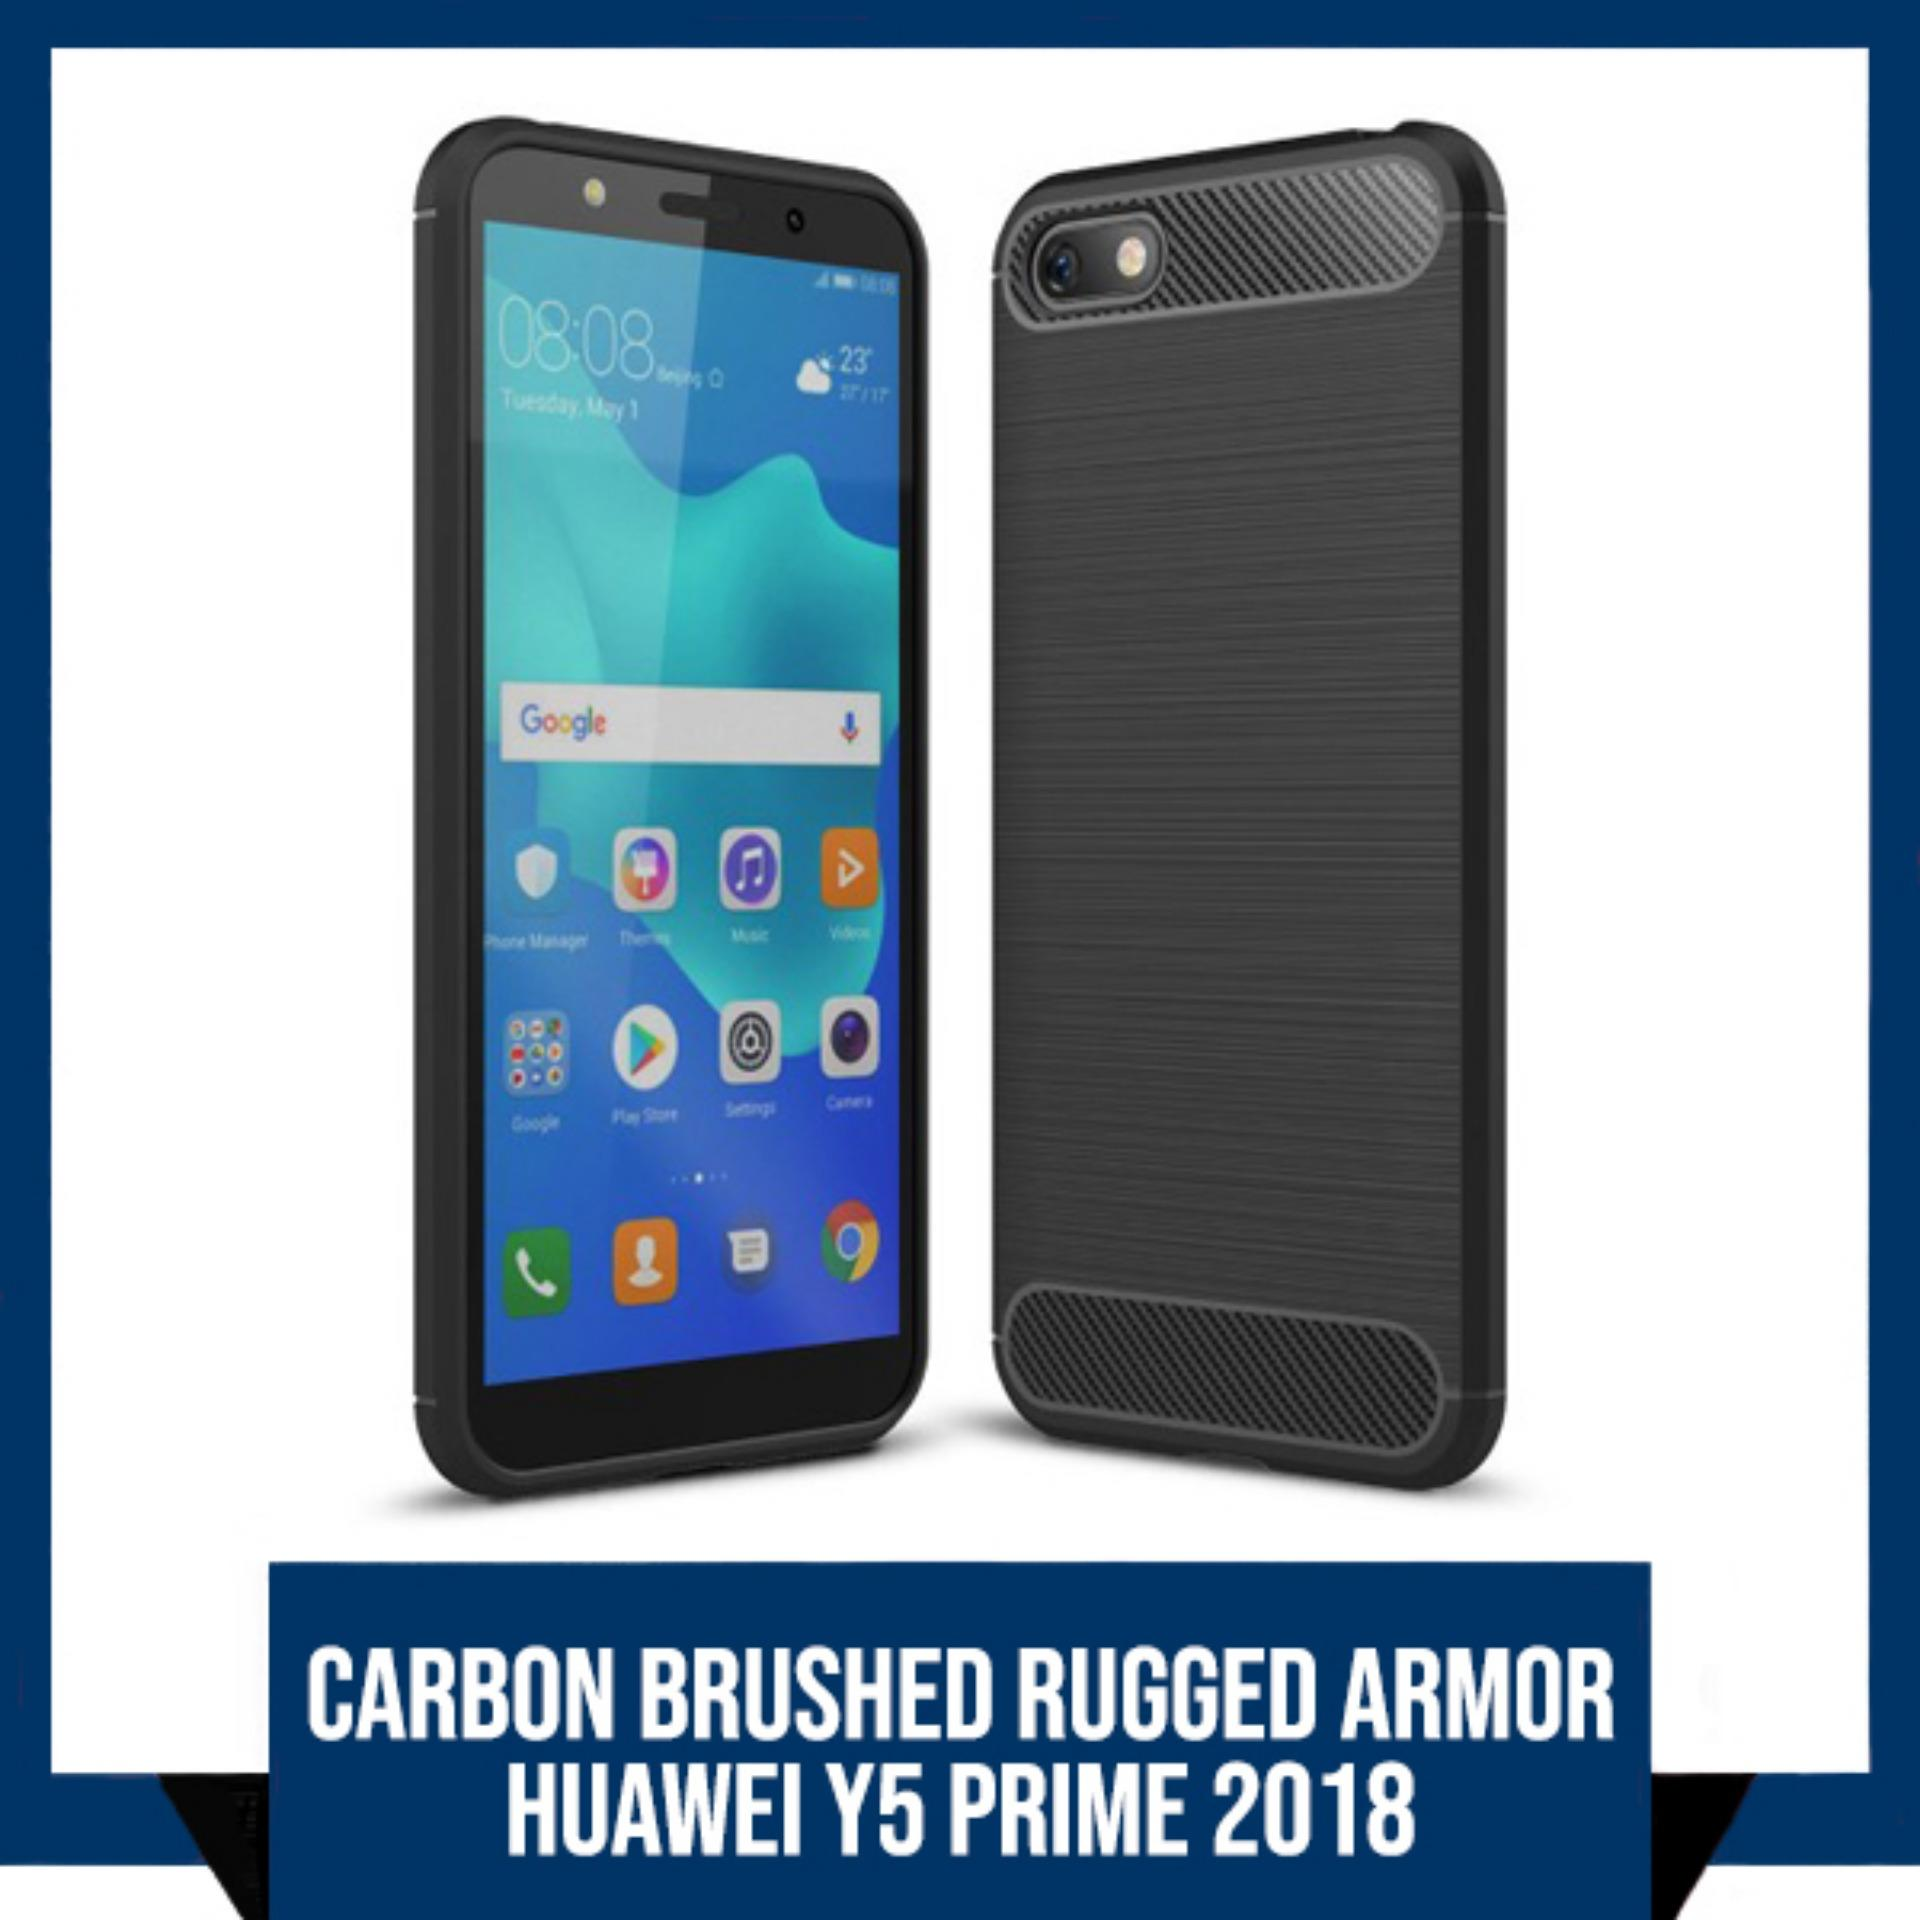 CASE HUAWEI Y5 PRIME 2018 PREMIUM CARBON BRUSHED RUGGED ARMOR BACK COVER